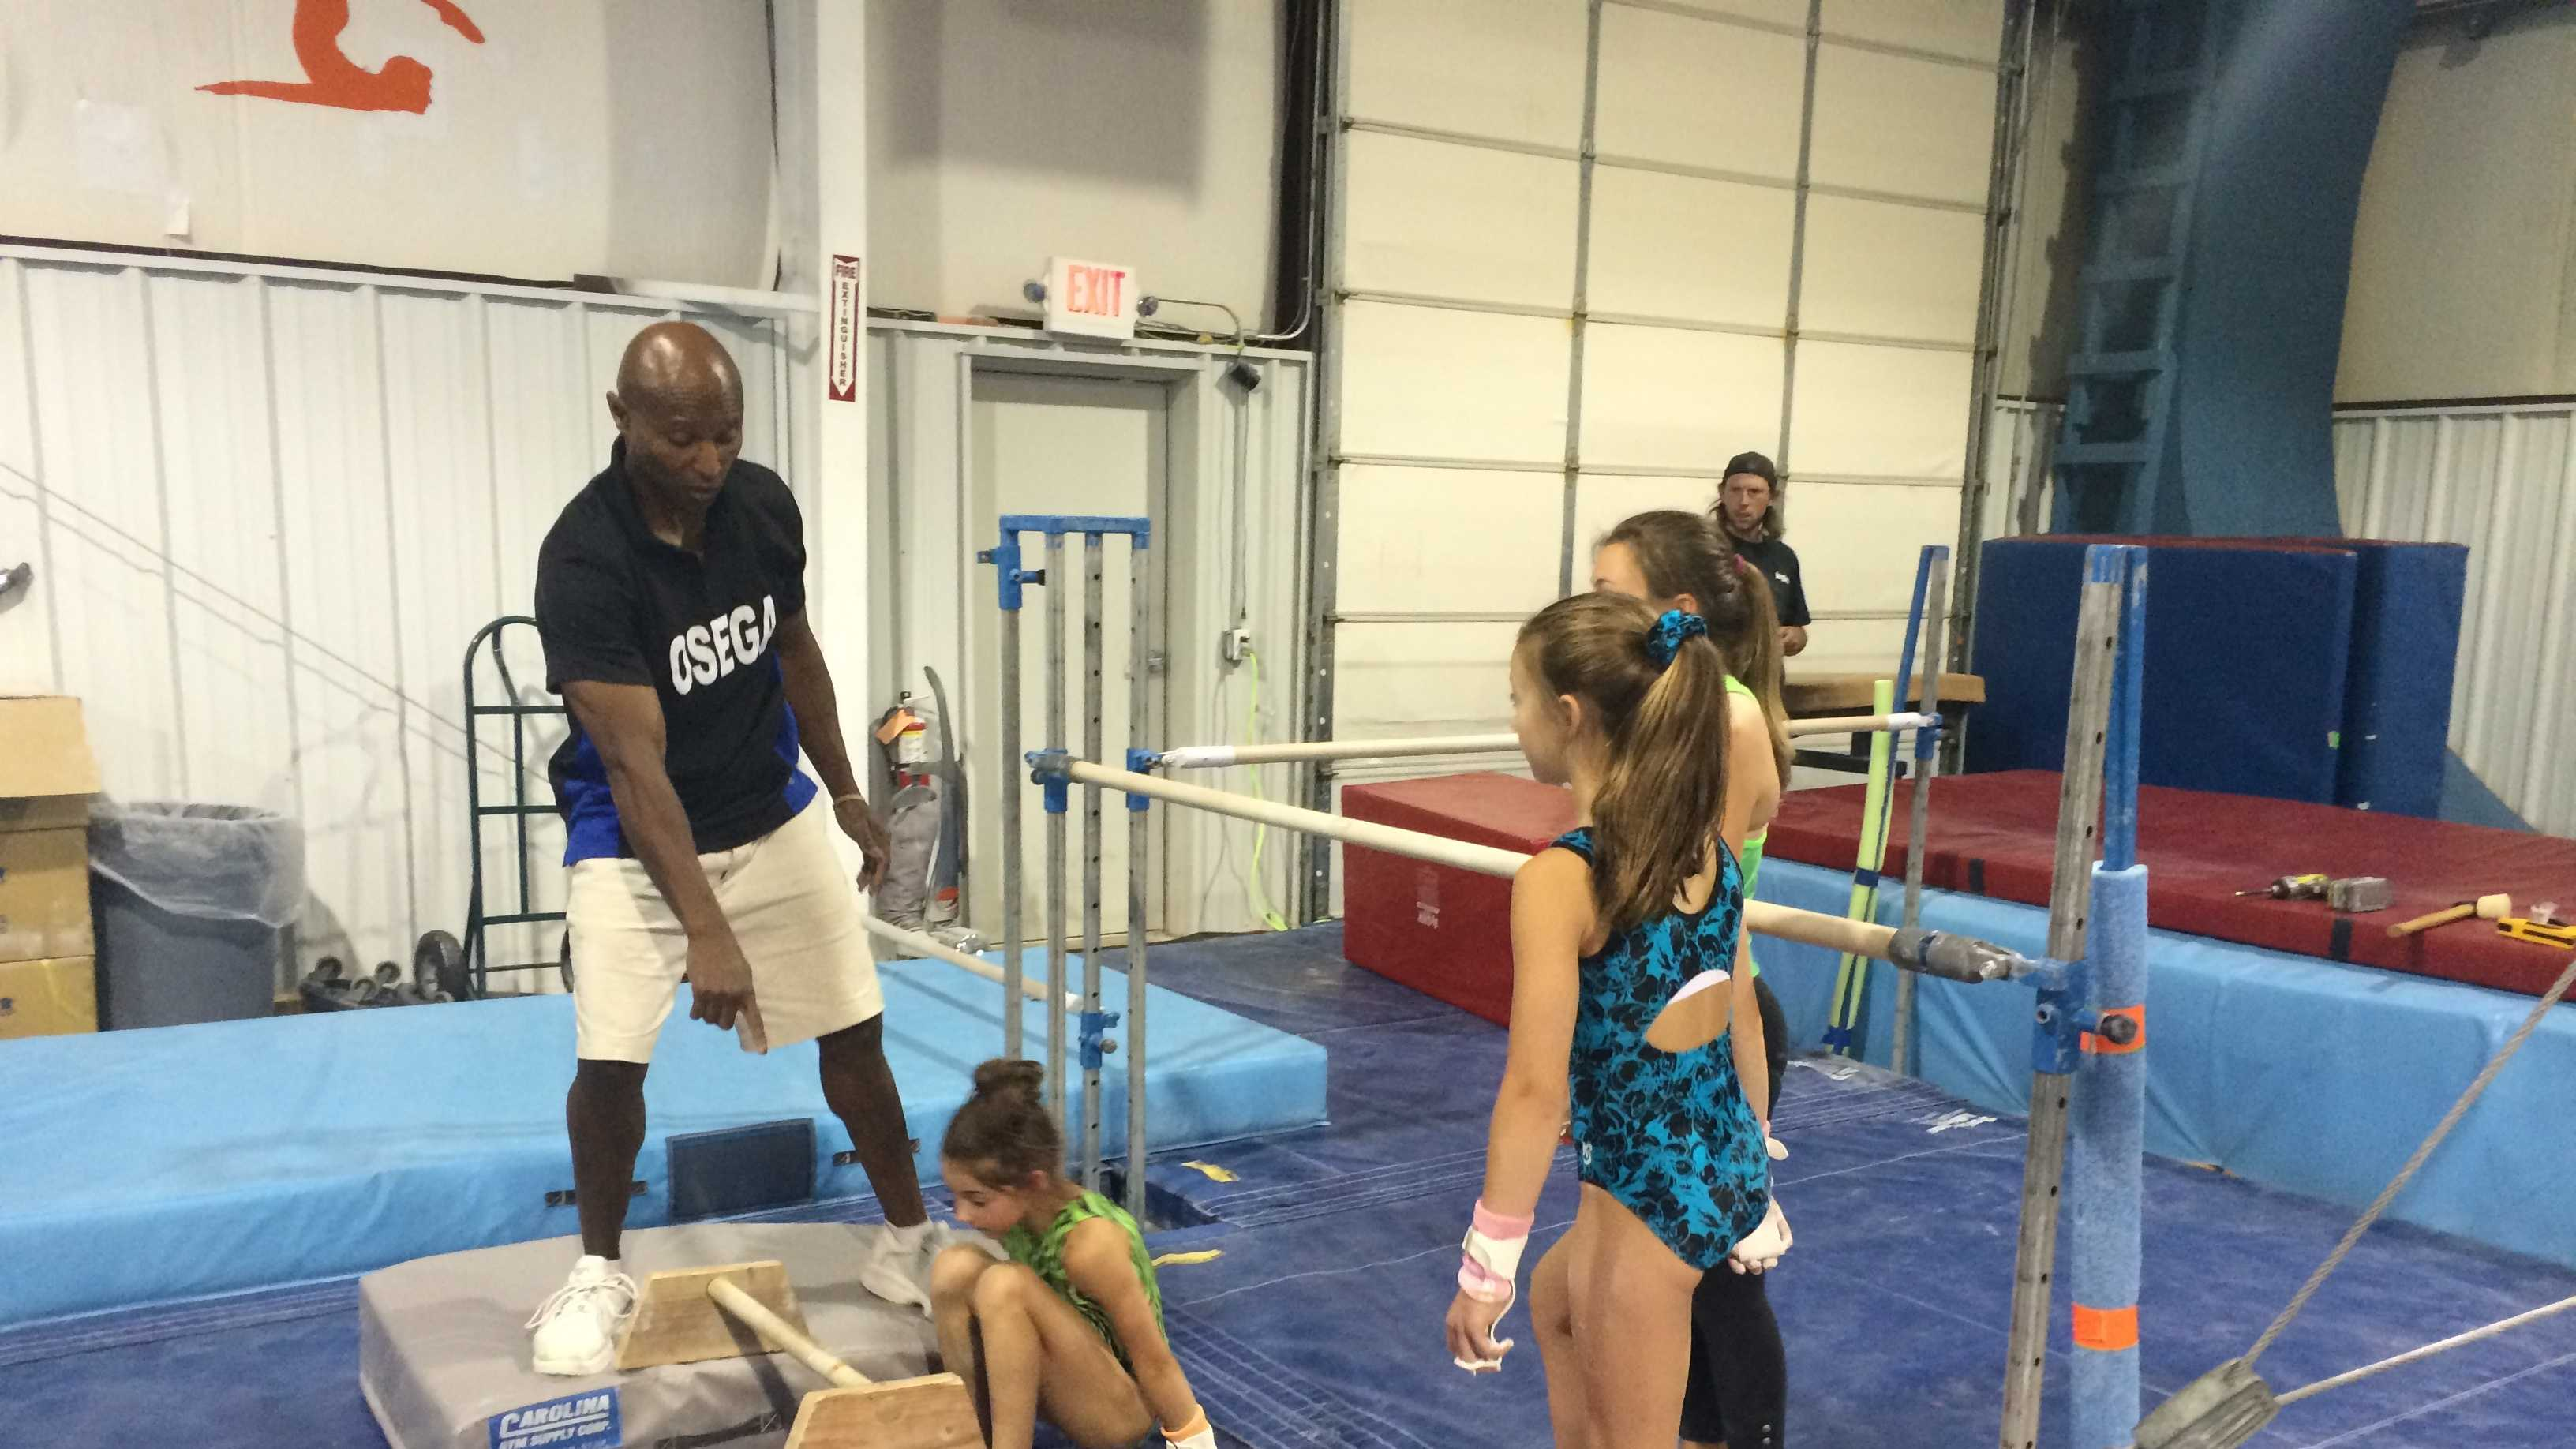 Coach and American Ninja Warrior contestant Miles Avery teaches his students at OSEGA Gymnastics